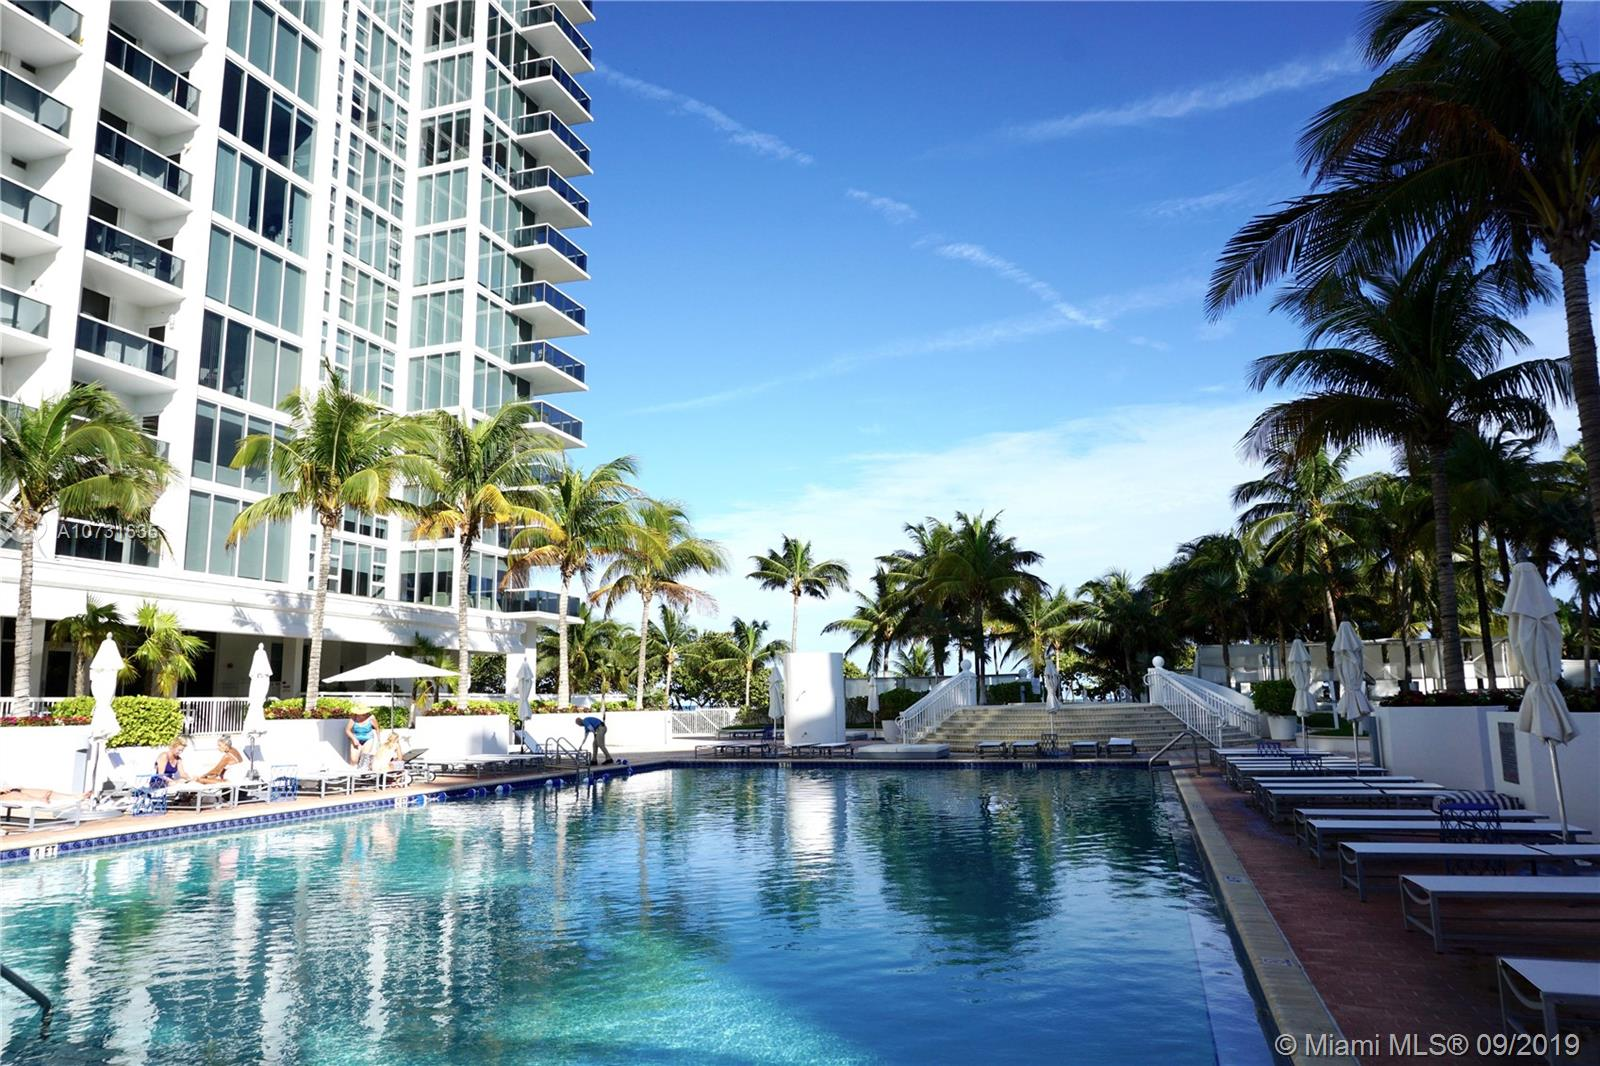 10275 Collins Ave, 323 - Bal Harbour, Florida